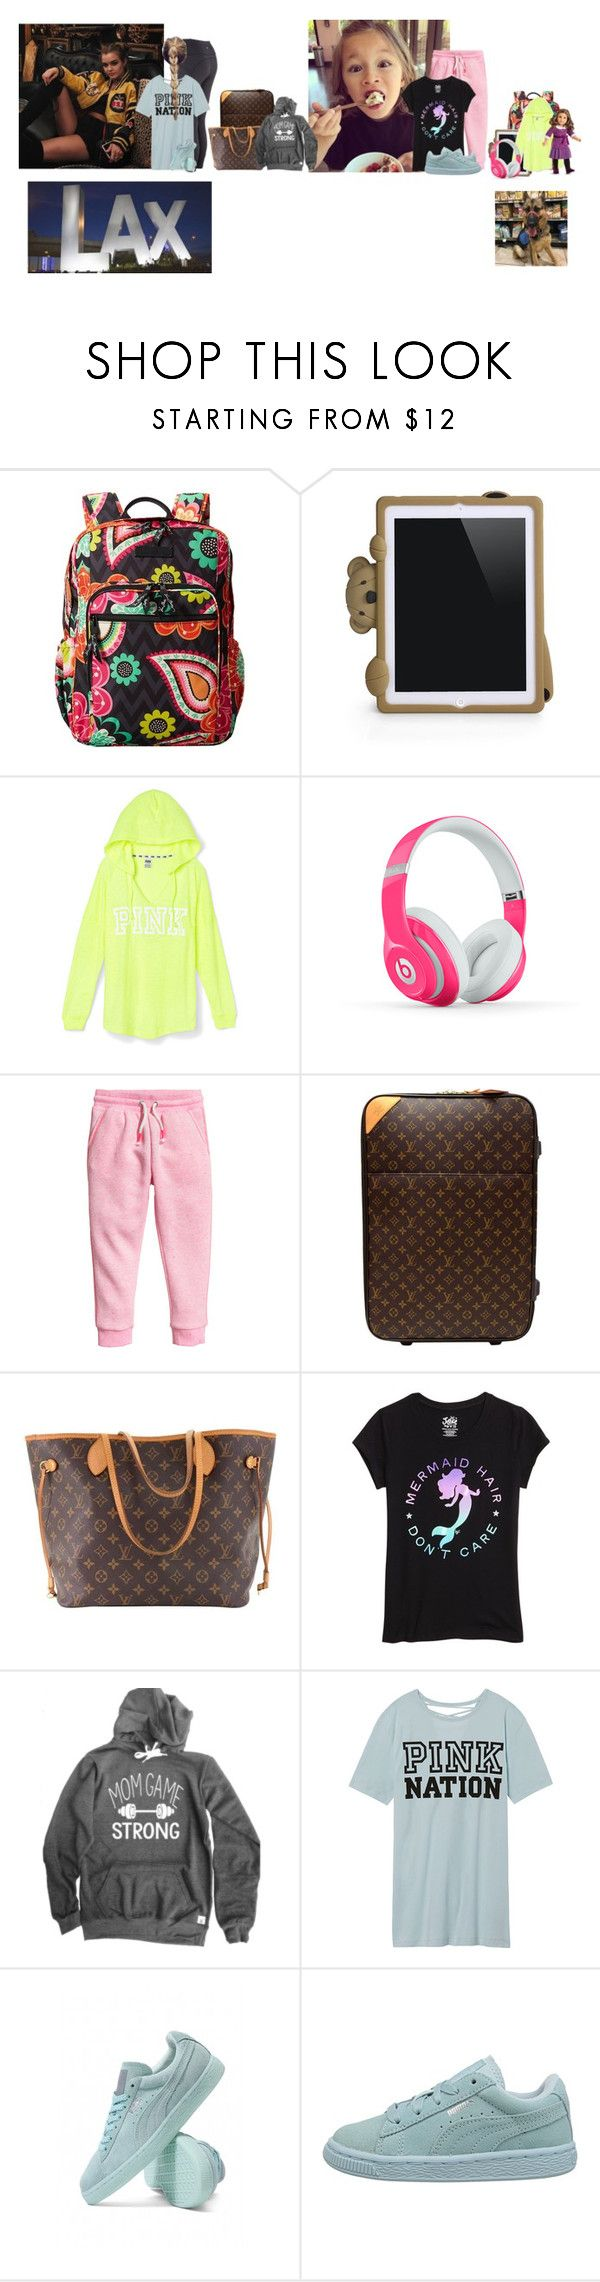 """Monday (night) // Flight to Georgia"" by those-families ❤ liked on Polyvore featuring Vera Bradley, Moschino, Beats by Dr. Dre, Louis Vuitton, Victoria's Secret, Puma and quickfamily"